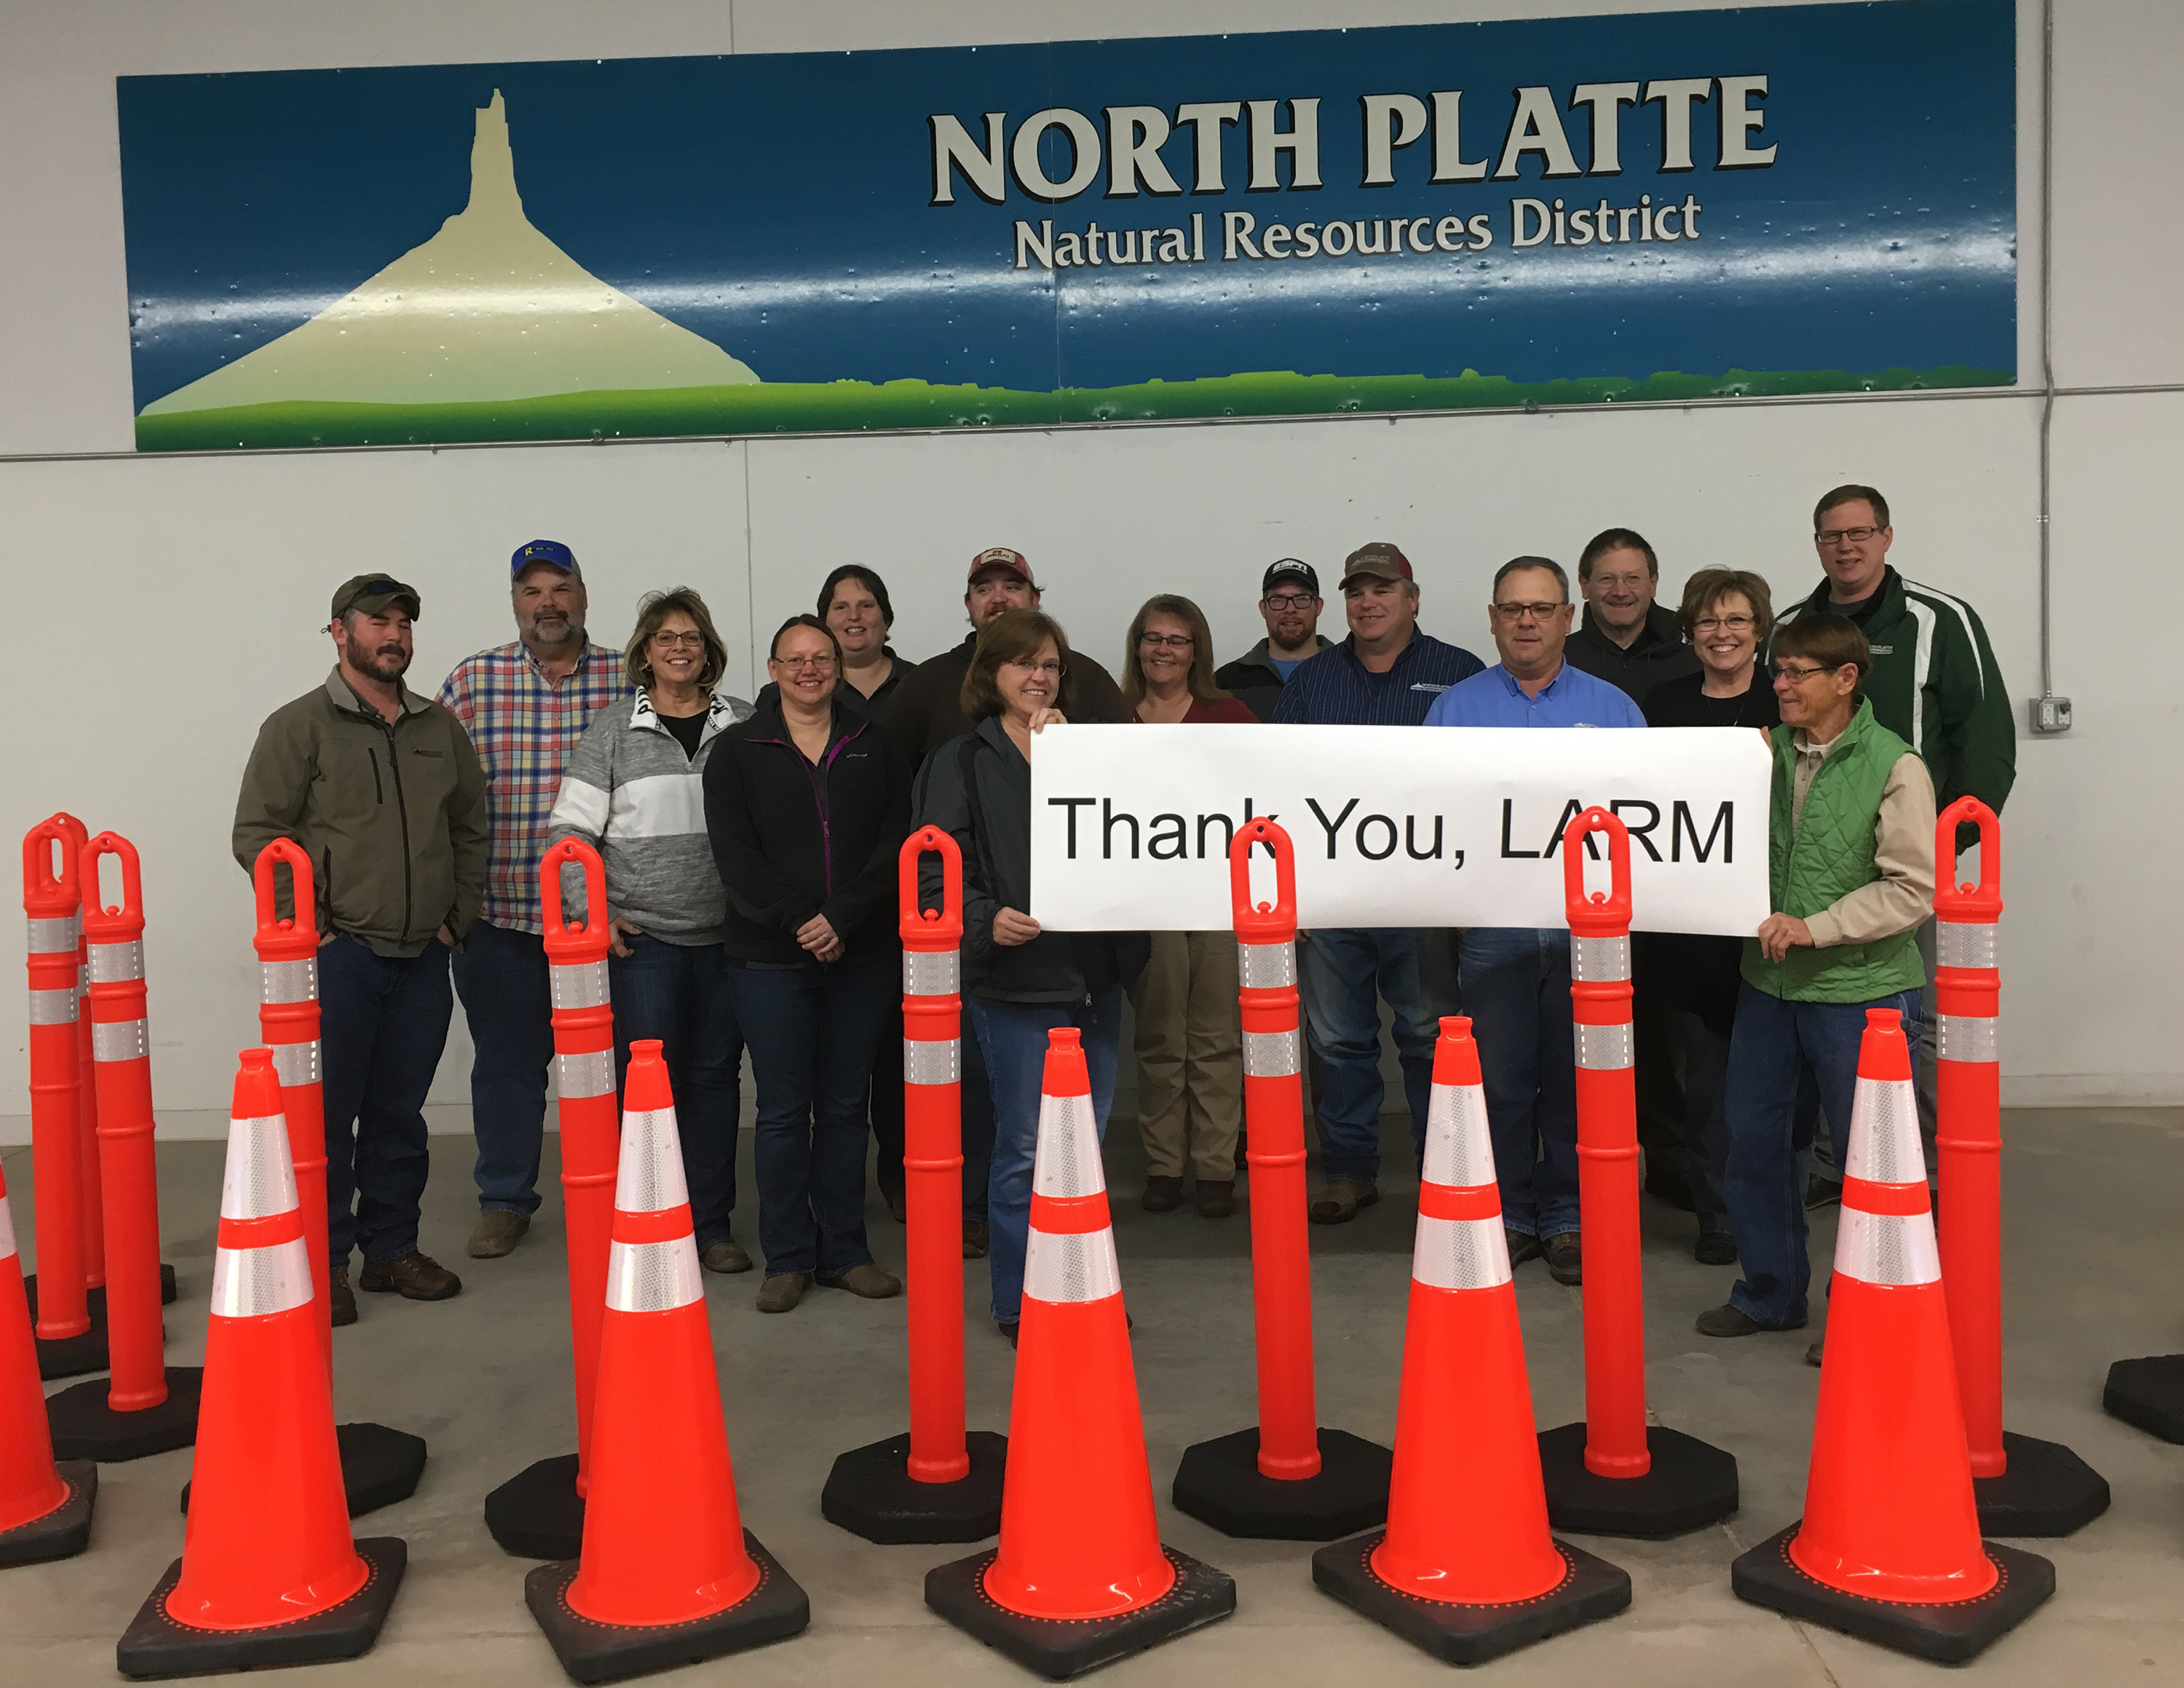 North Platte NRD gets Lean on LARM grant